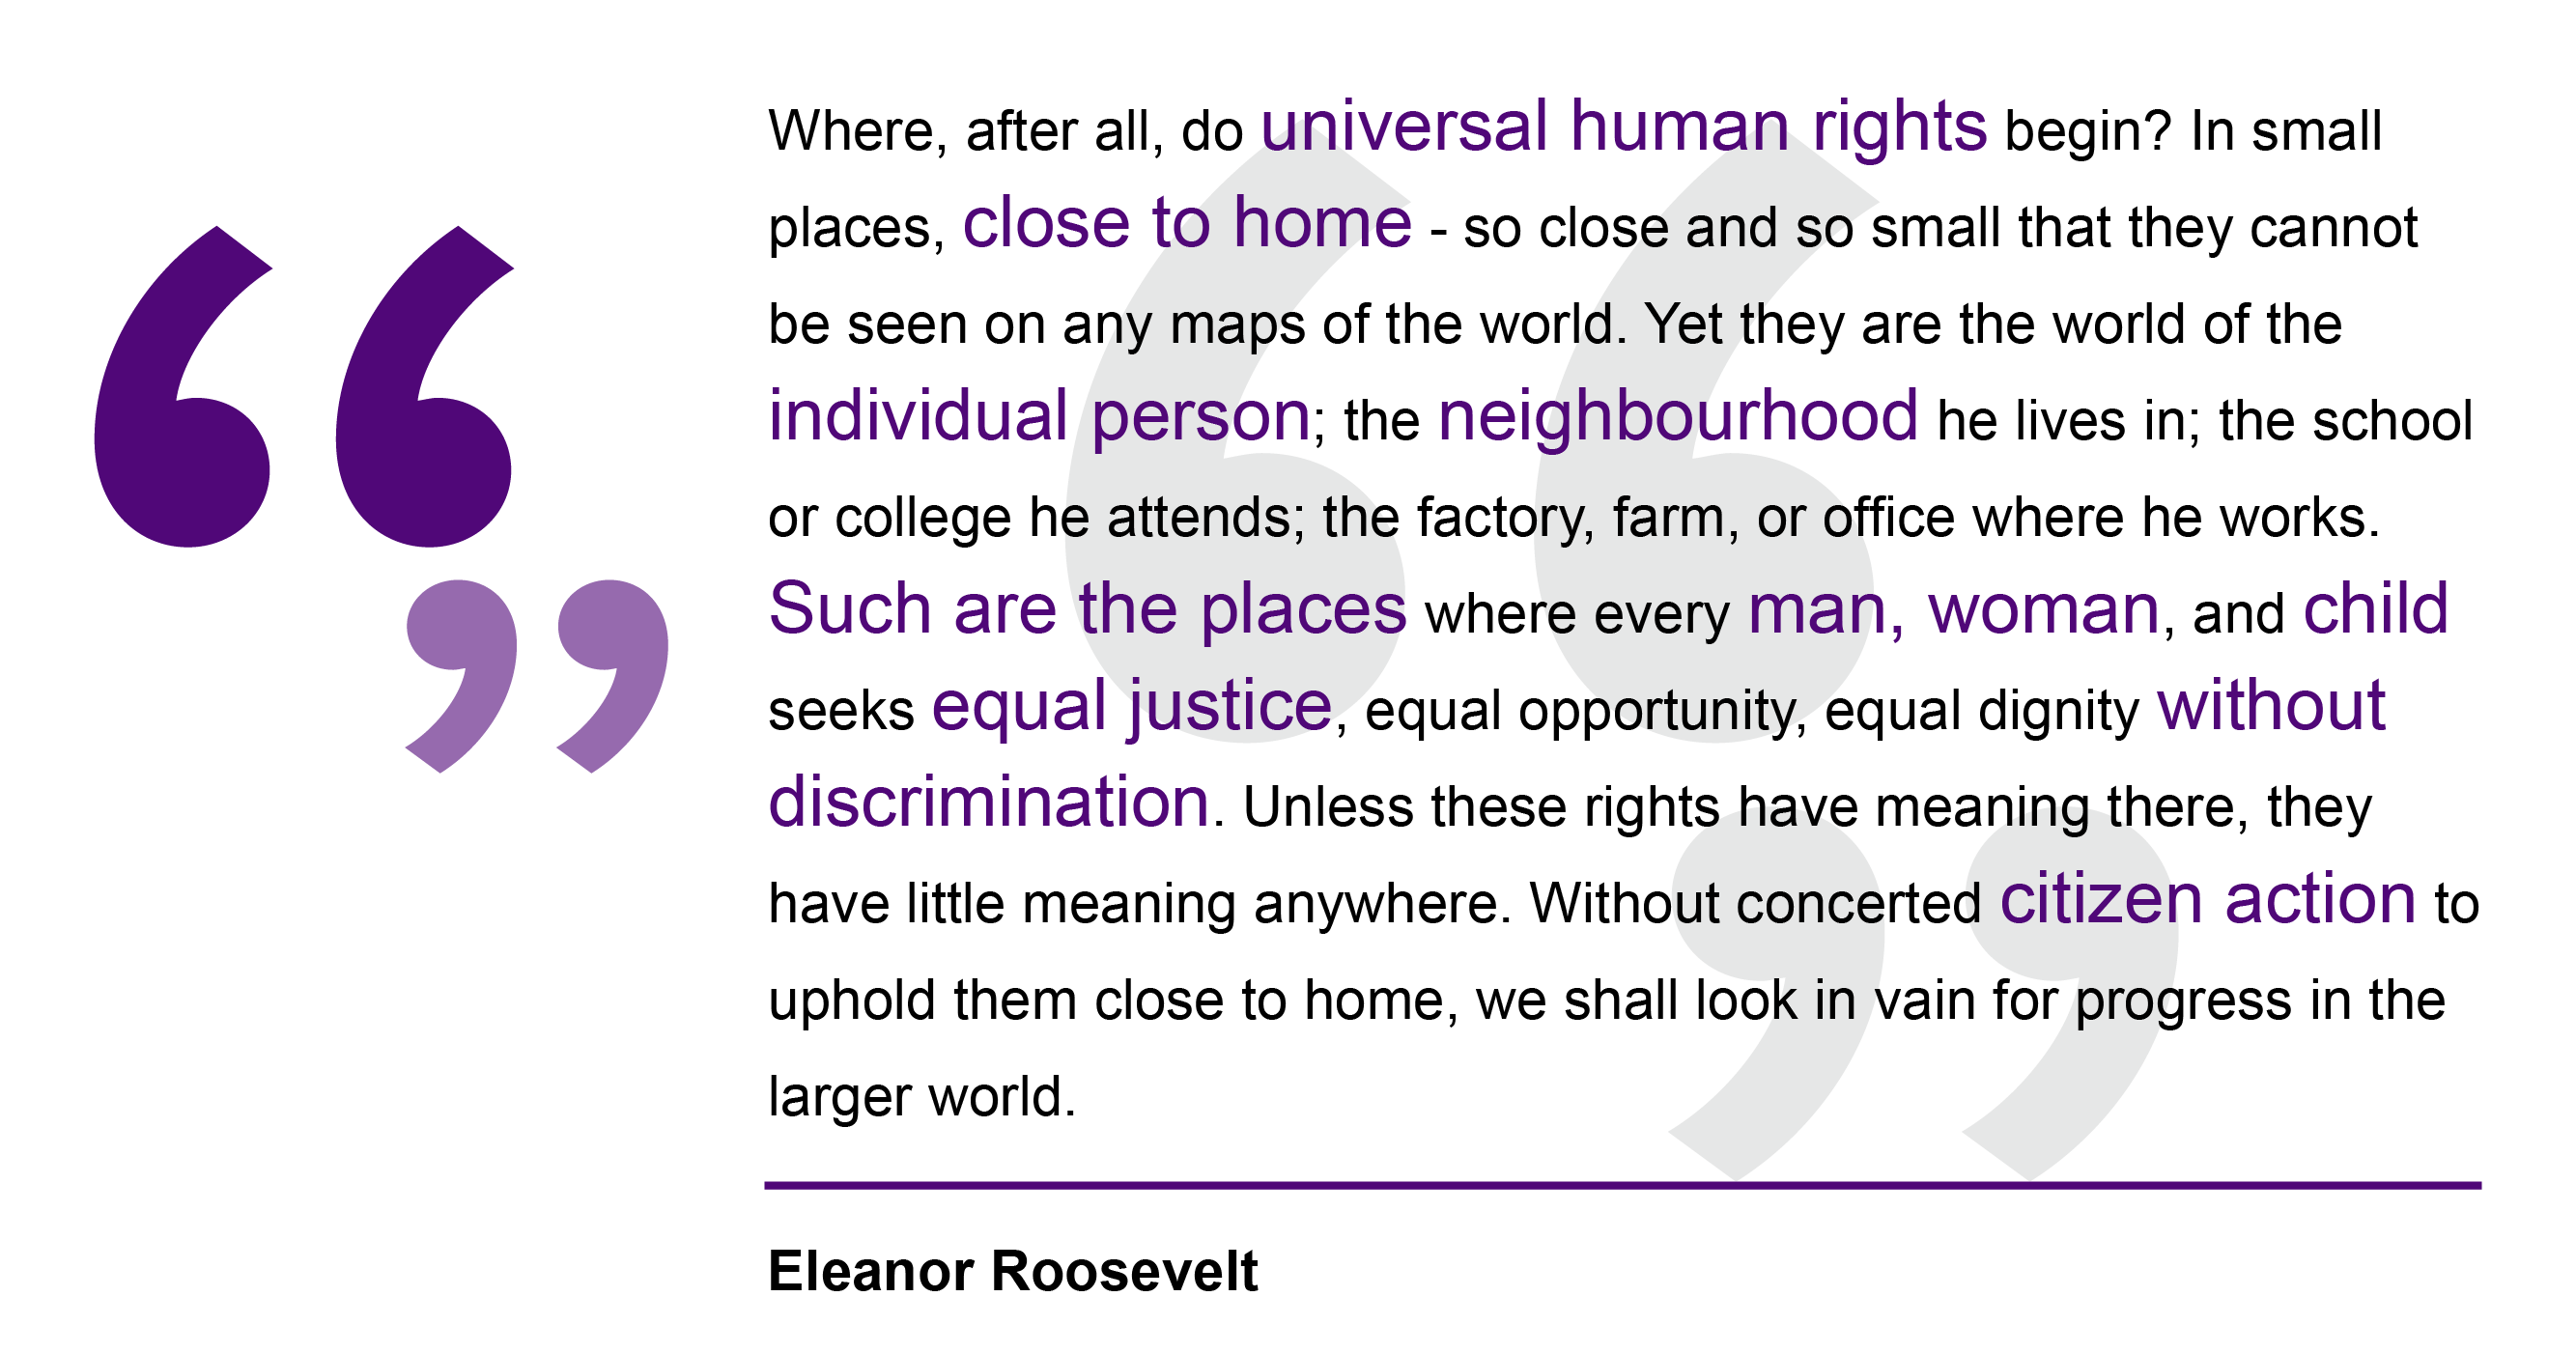 Eleanor Roosevelt, 1948 Where, after all, do universal human rights begin? In small places, close to home - so close and so small that they cannot be seen on any maps of the world. Yet they are the world of the individual person; the neighbourhood he lives in; the school or college he attends; the factory, farm, or office where he works. Such are the places where every man, woman, and child seeks equal justice, equal opportunity, equal dignity without discrimination. Unless these rights have meaning there, they have little meaning anywhere. Without concerted citizen action to uphold them close to home, we shall look in vain for progress in the larger world.Eleanor Roosevelt, speech to the United Nations, 1948